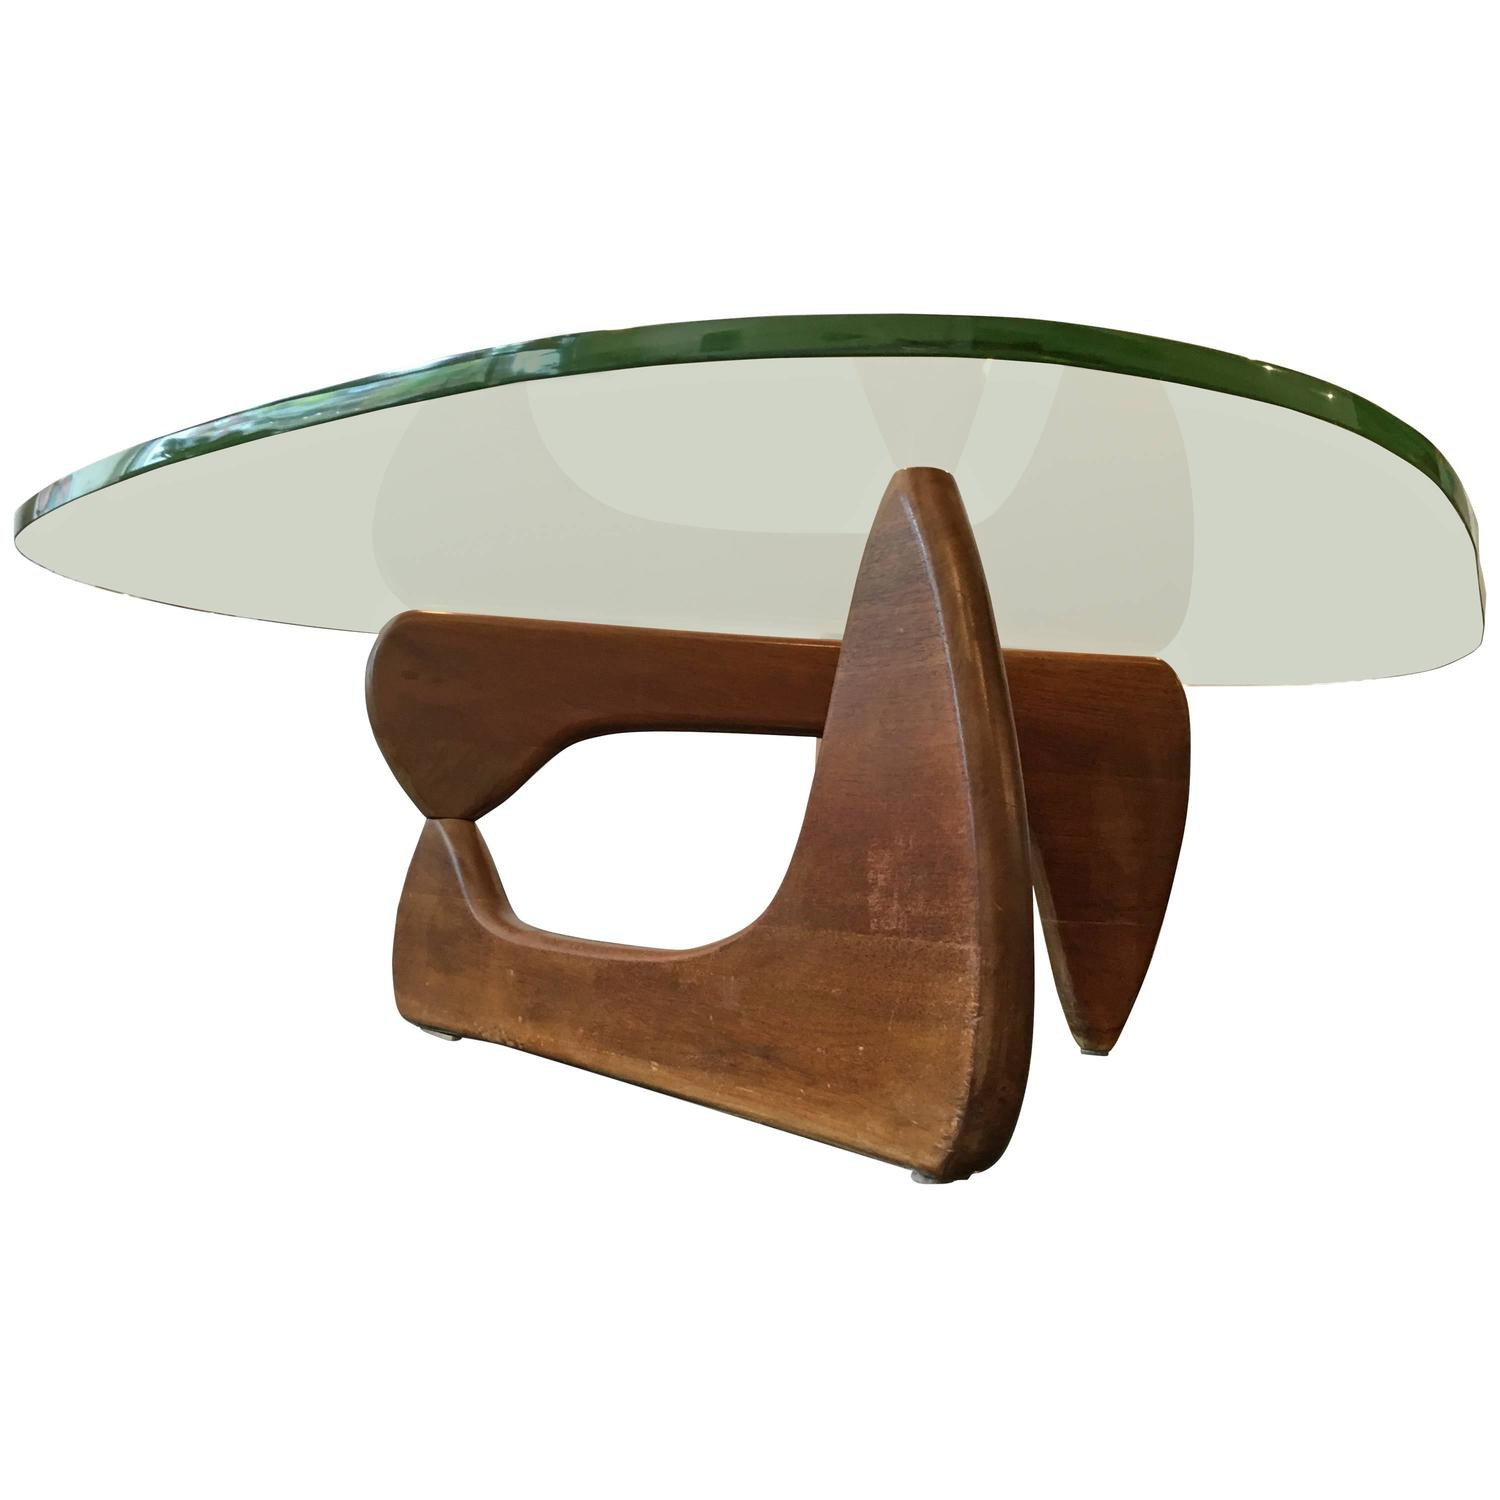 Rare Early Walnut Isamu Noguchi Coffee Table Herman Miller 1947 At 1stdibs